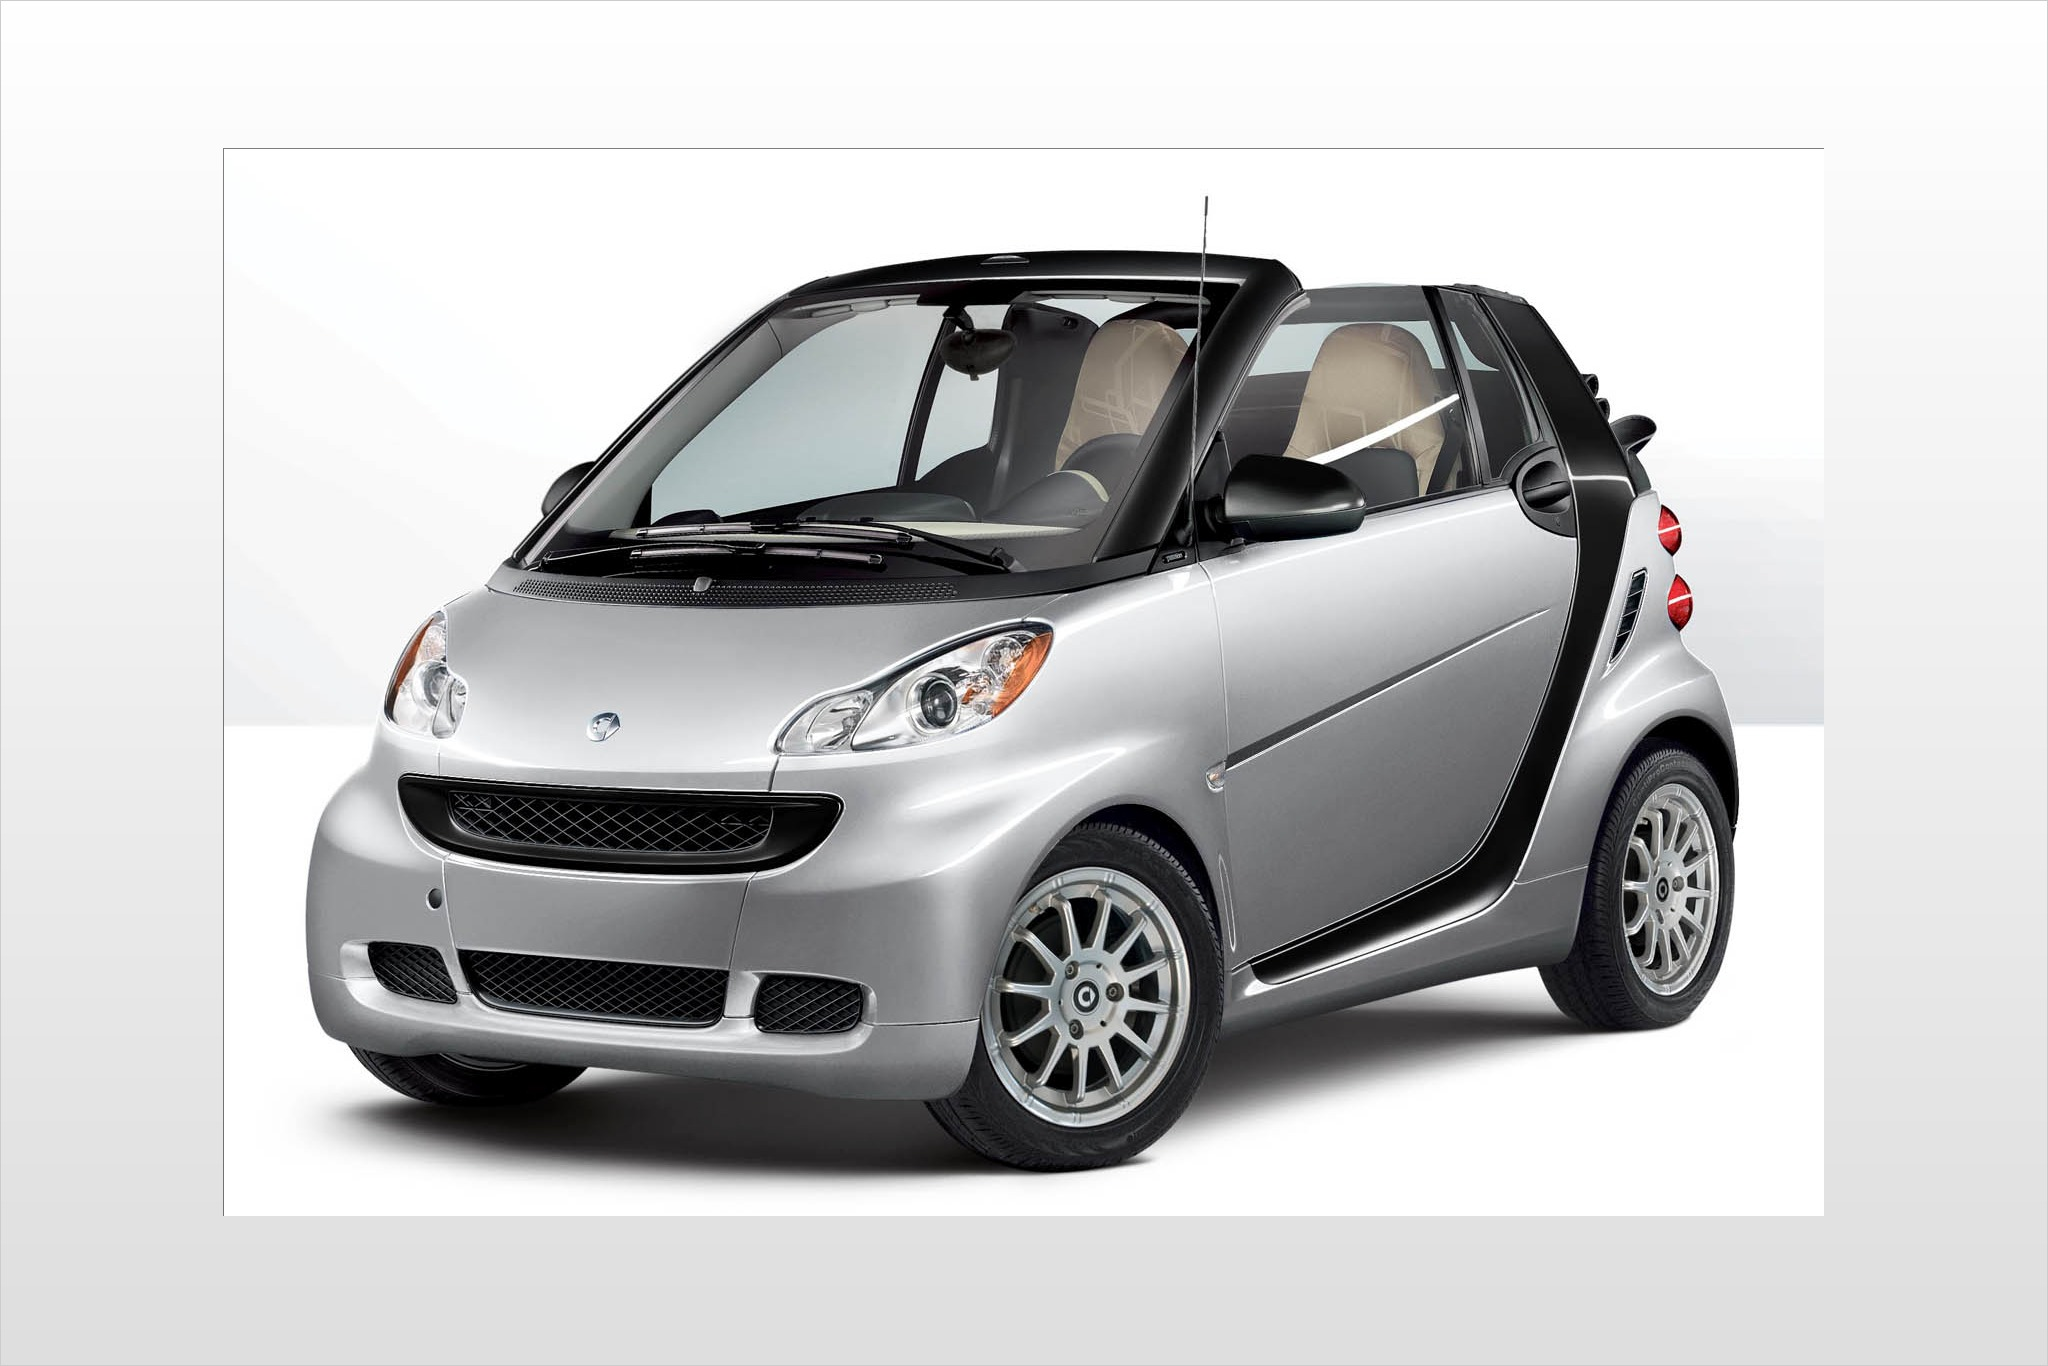 2012 smart fortwo 2dr Hat exterior #5